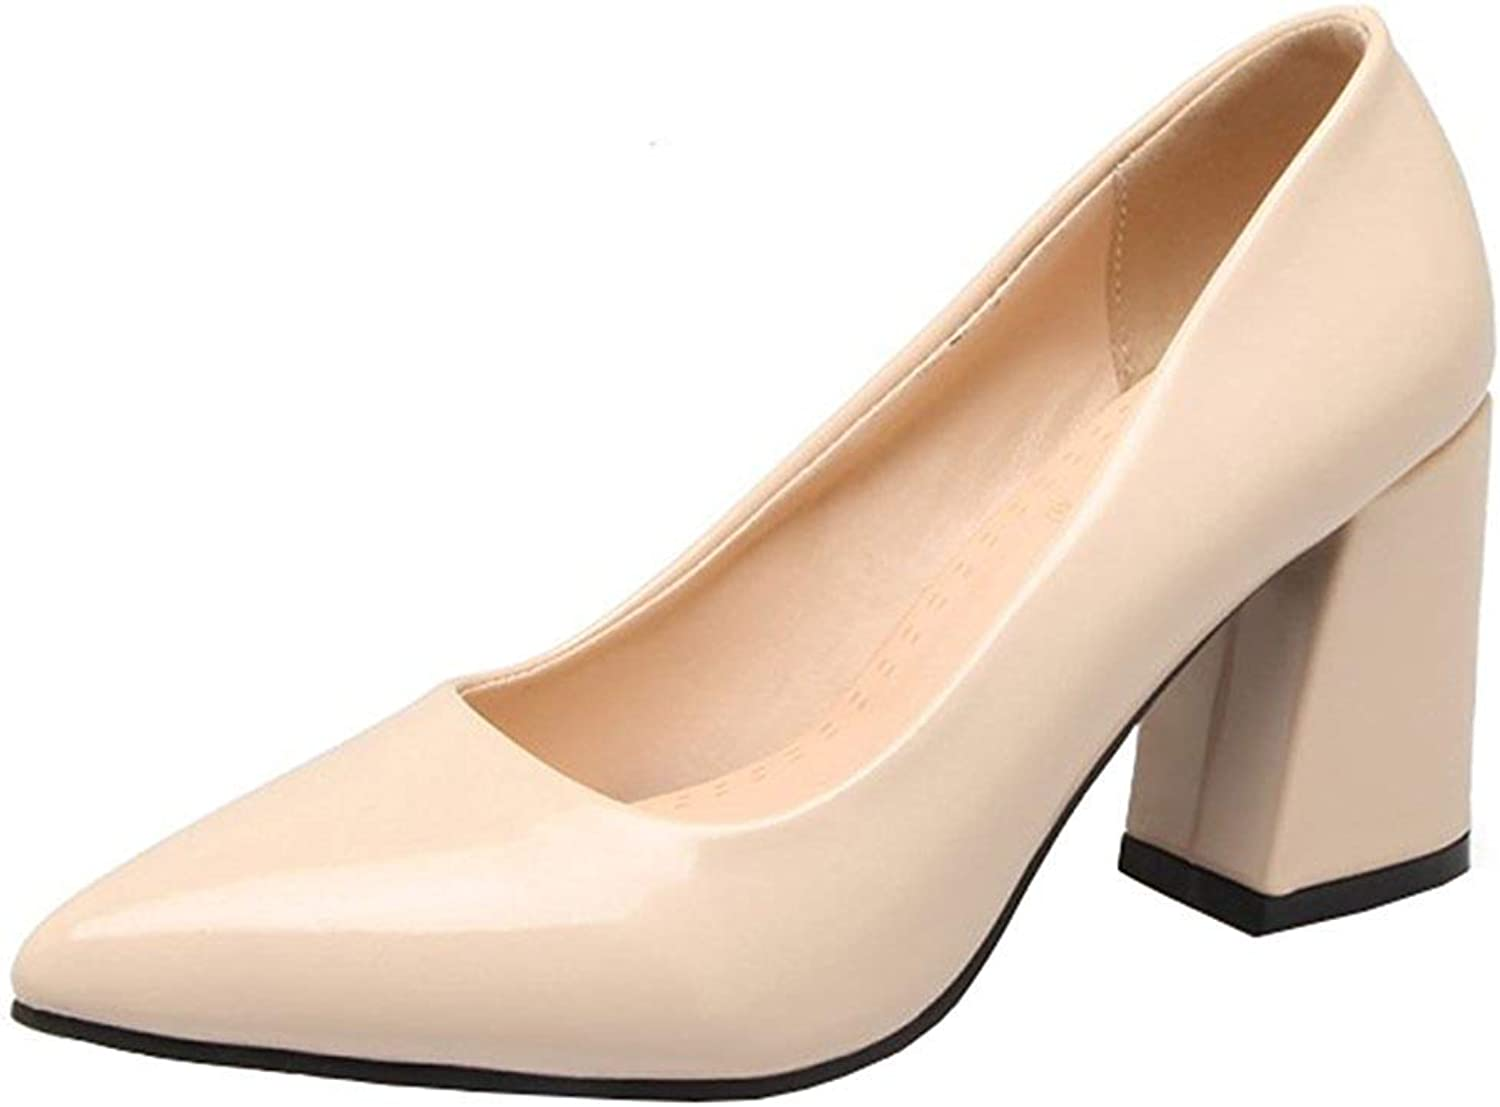 Gcanwea Women's Dressy Pointed Toe Low Cut Block High Heels Slip On Pumps shoes Simple Stylish Breathable Patent Leather Classic Casual Skinny Ladies Sexy Comfortable Pink 4 M US Pumps shoes